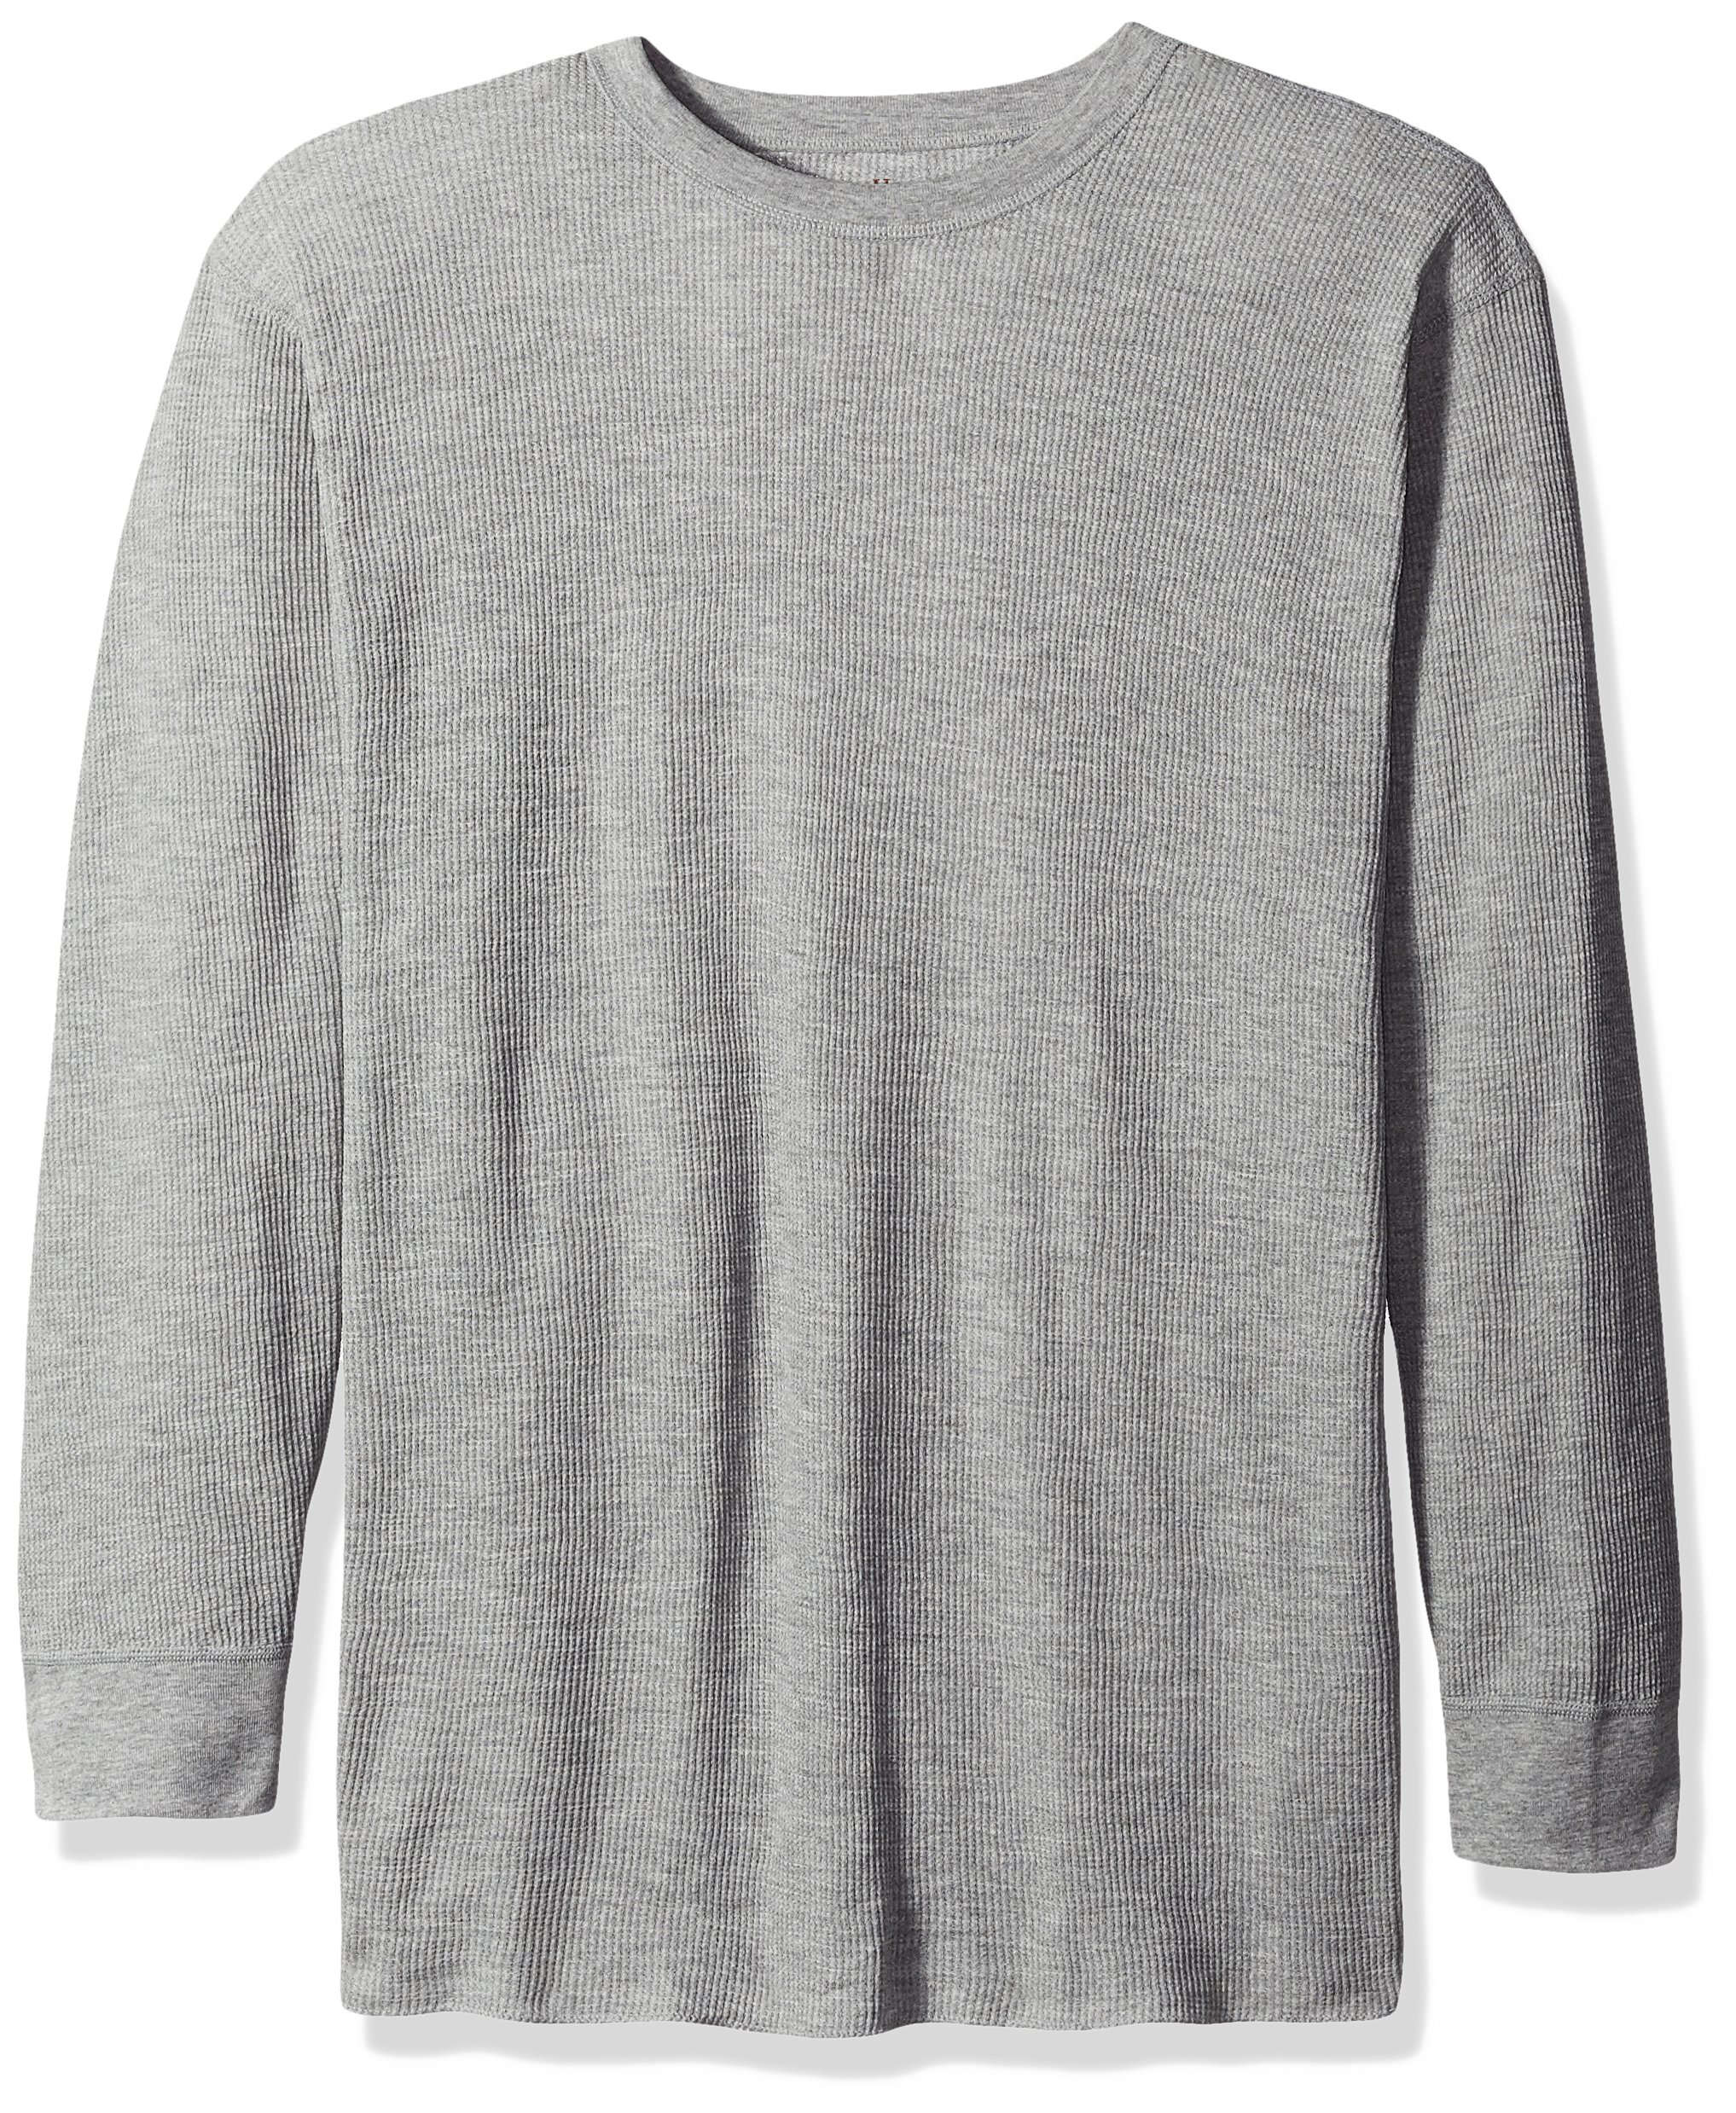 Hanes Tall Men's Big Red Label X-Temp Thermal Crew Top, Grey, 3X Large by Hanes